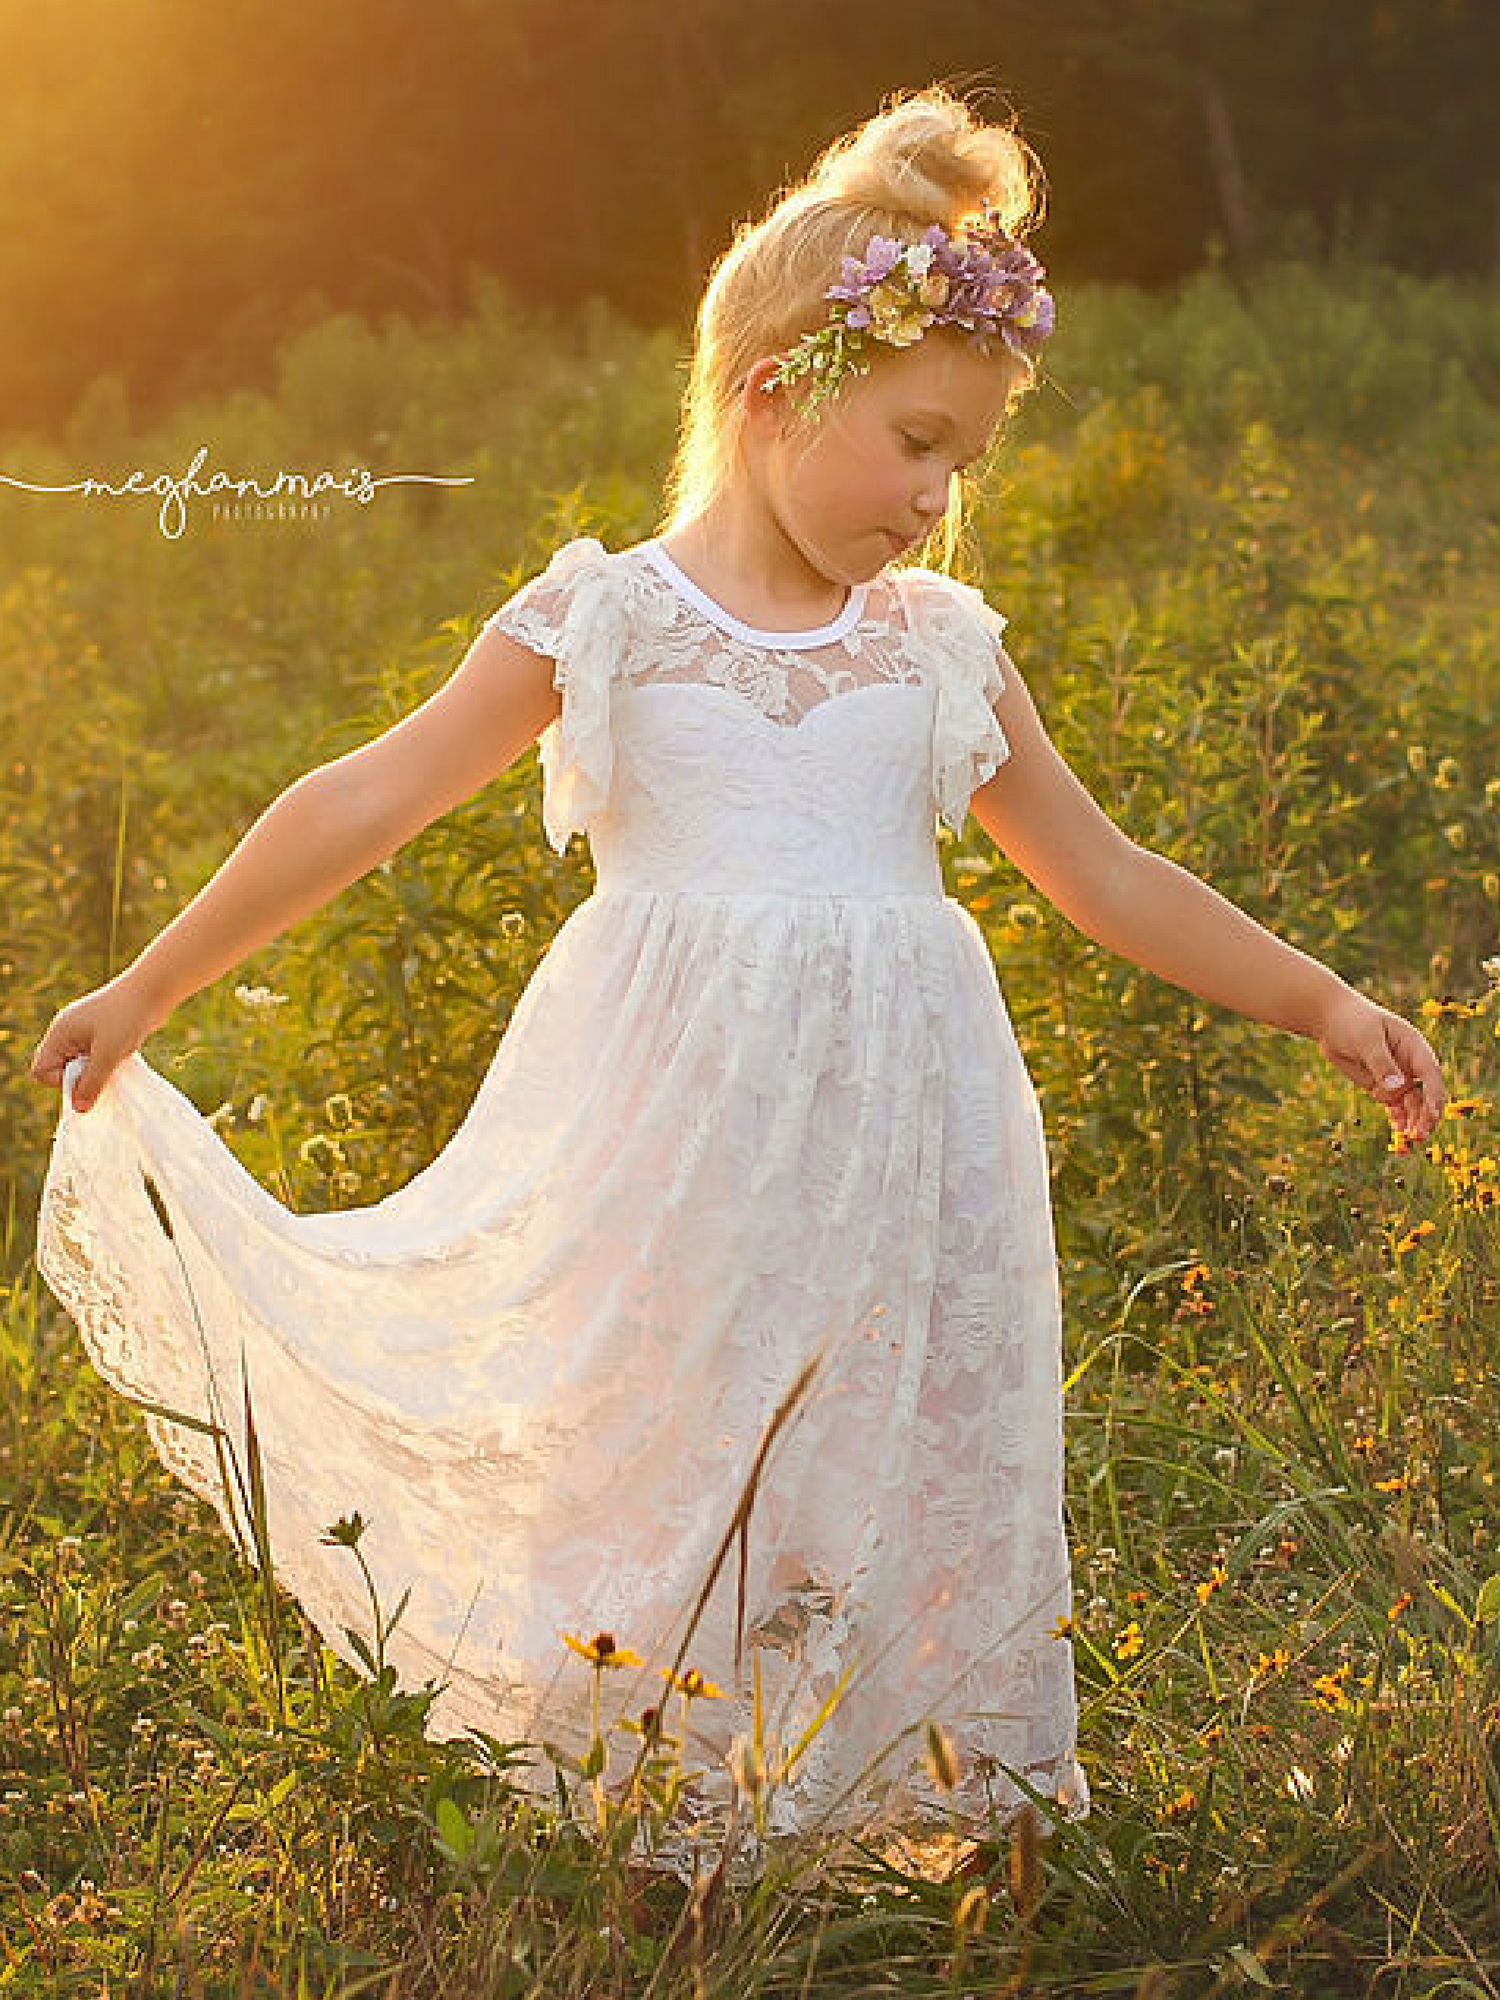 Free Photo Flower Girl Spring Sweet Flower Free Download Jooinn